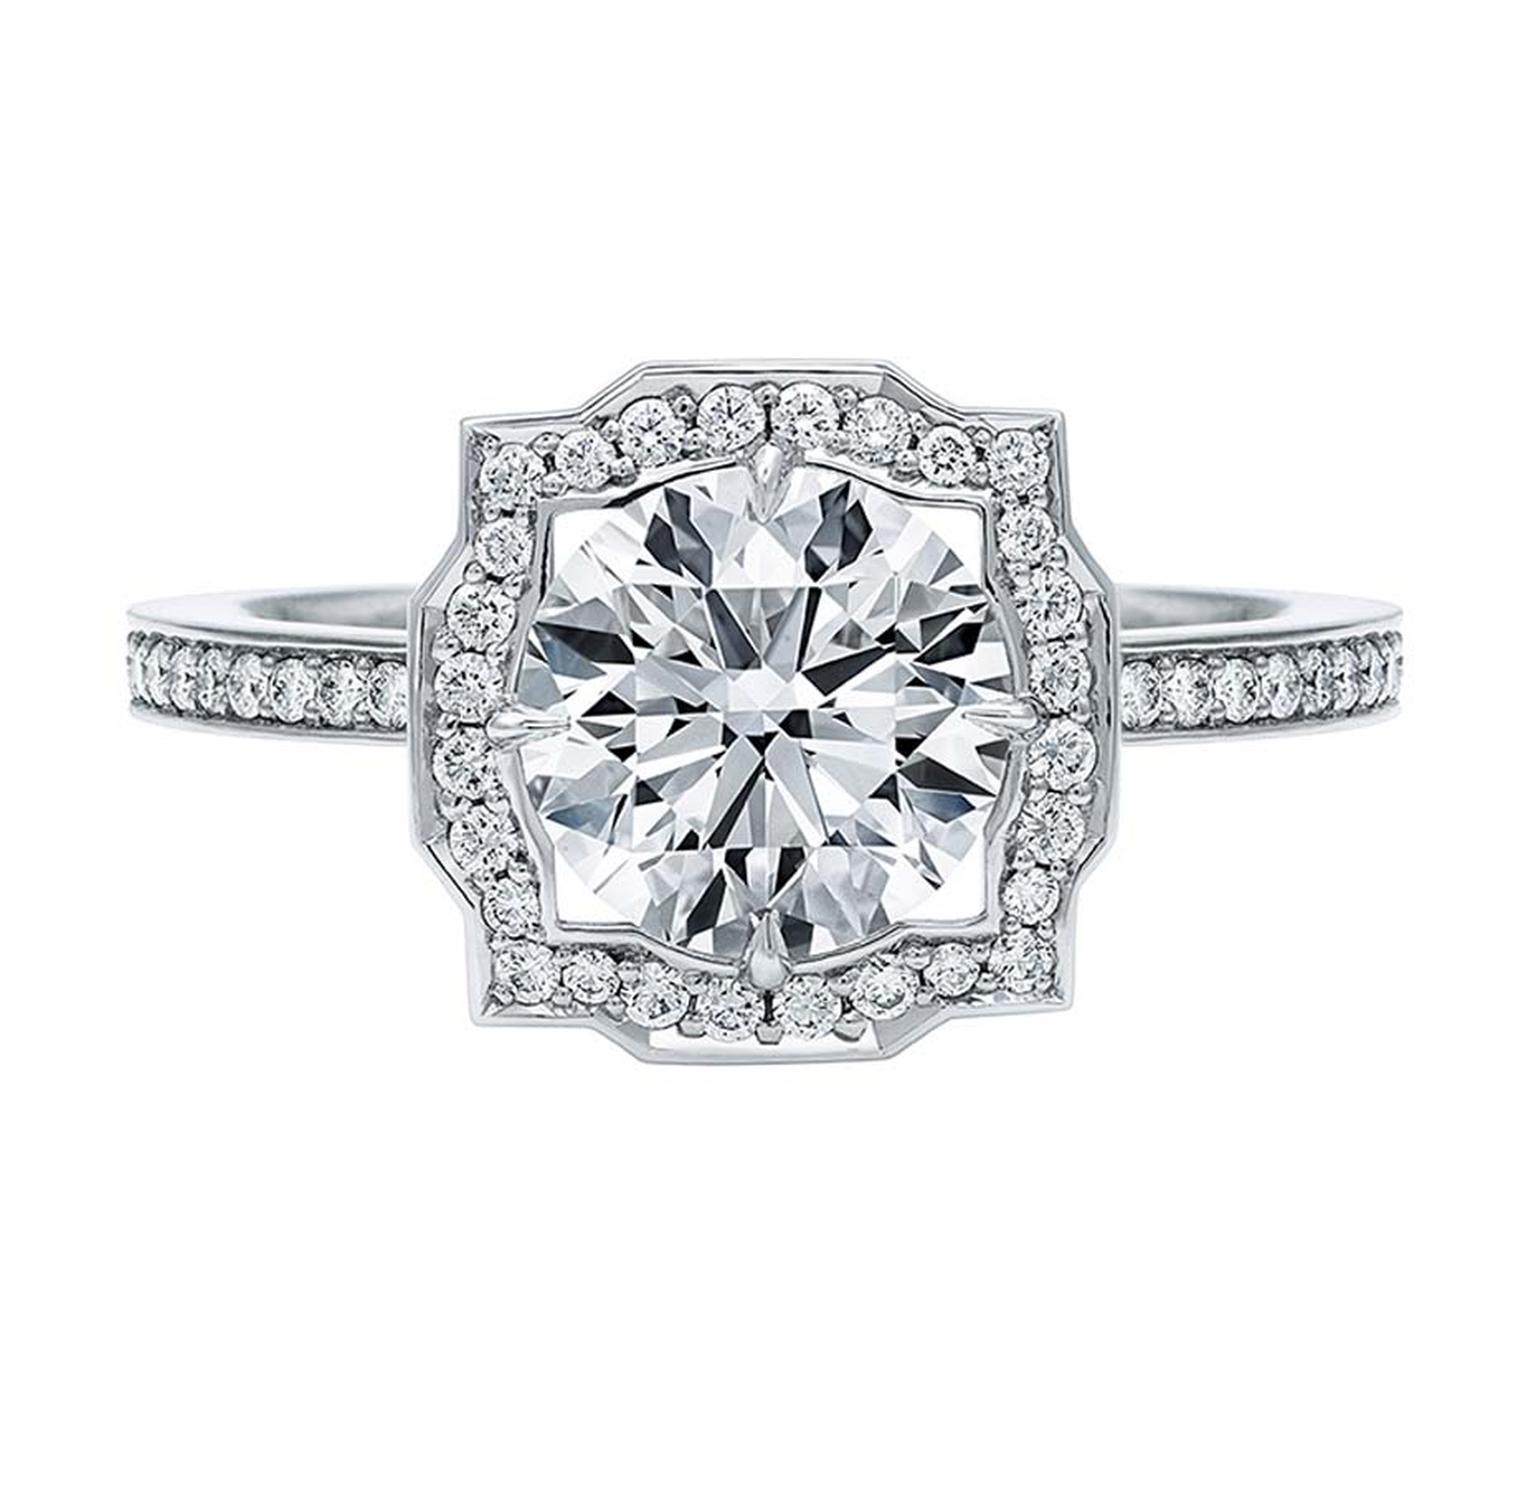 Harry Winston's Belle round brilliant-cut diamond engagement ring